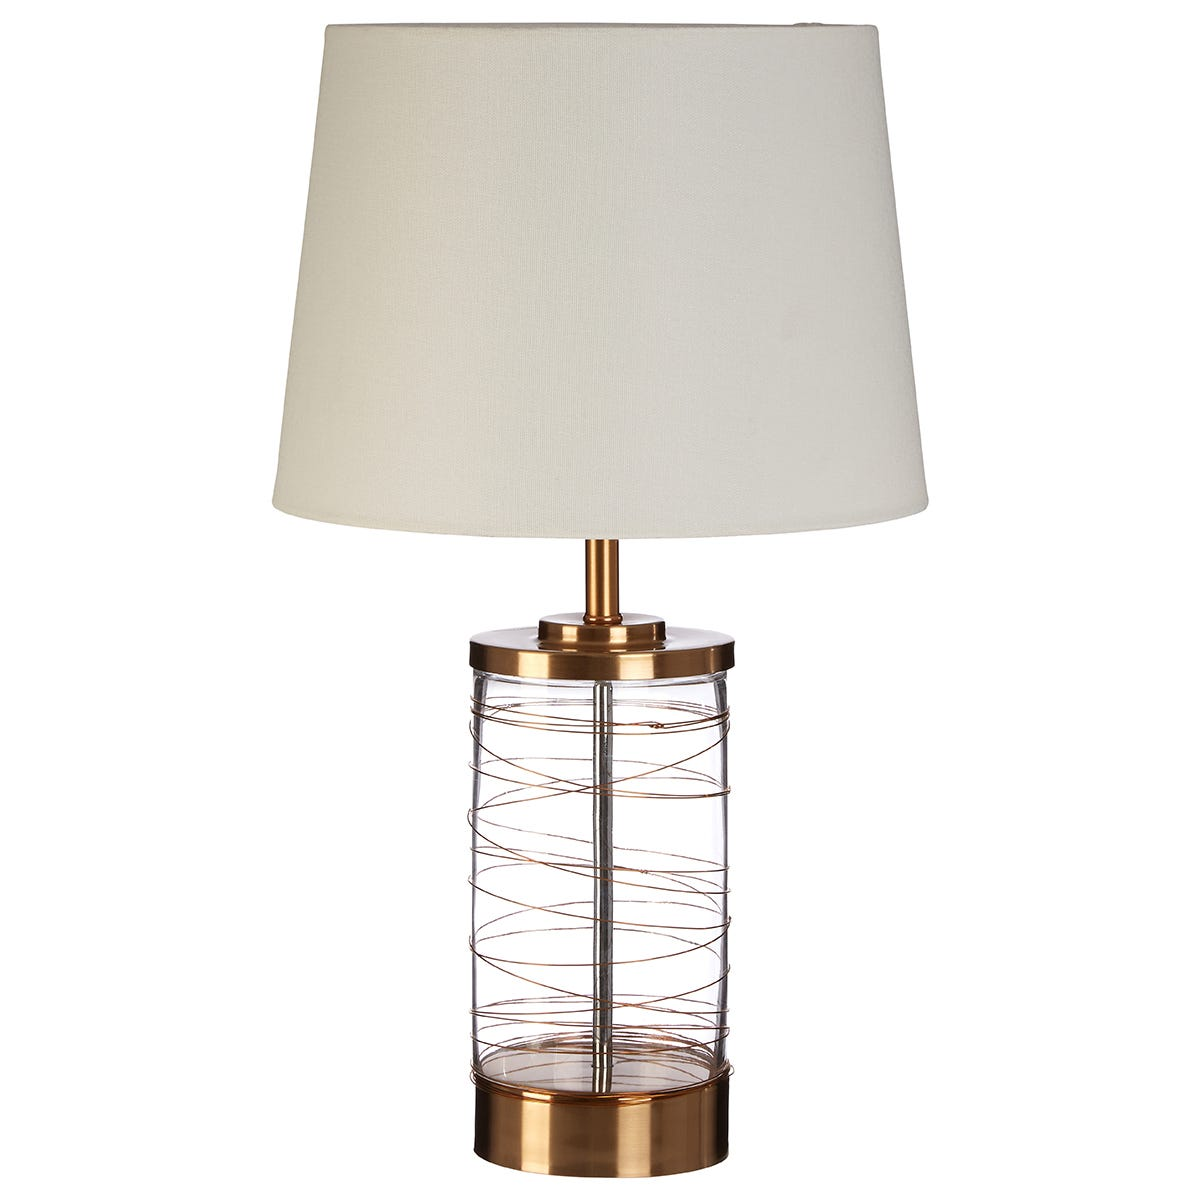 Premier Housewares Zola Table Lamp in Glass/Gold Finish with White Linen Shade